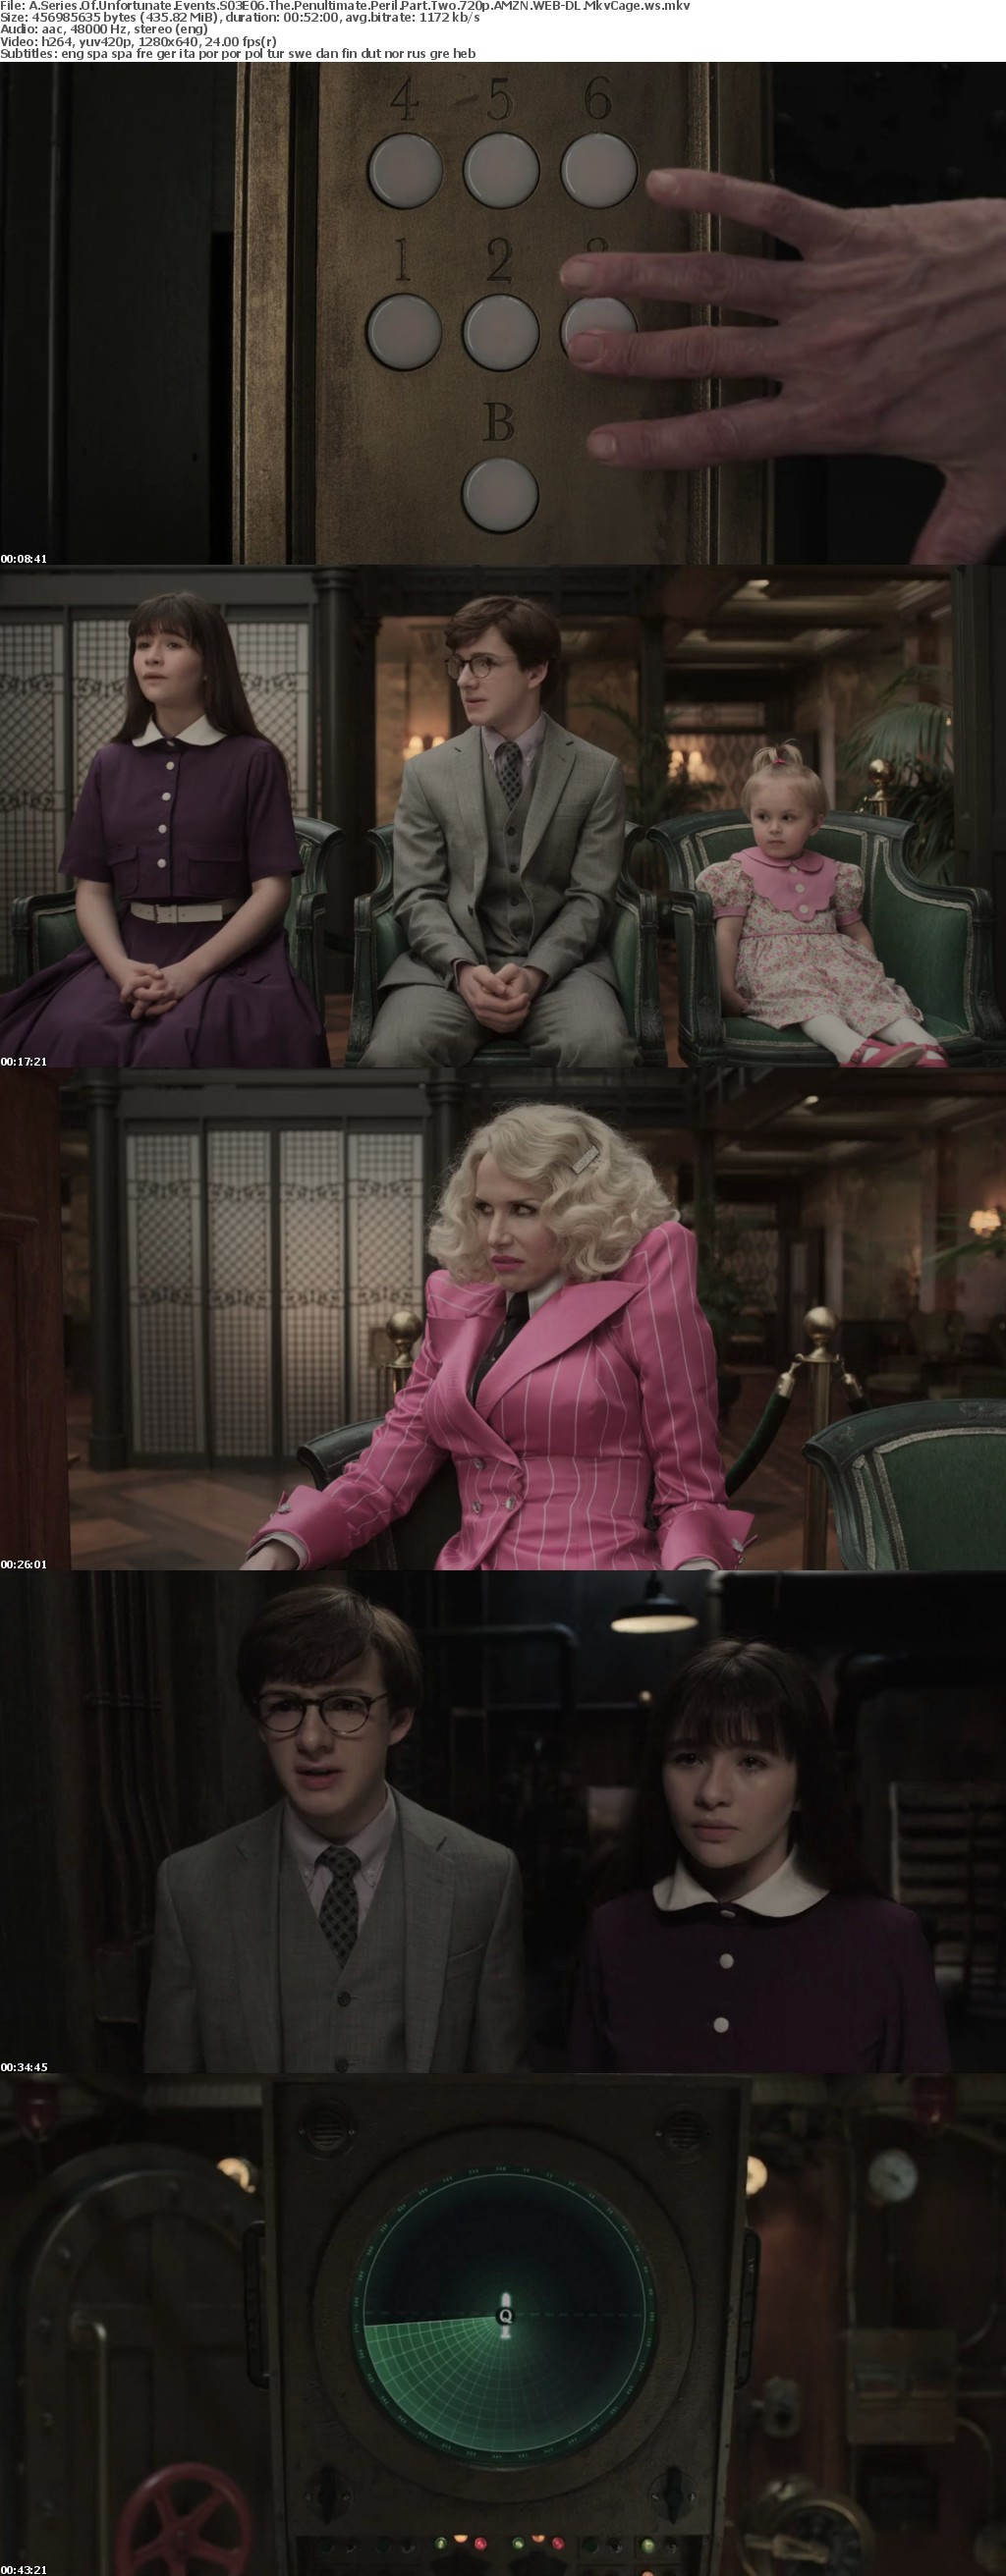 A Series of Unfortunate Events S03 720p NF WEB-DL x264 MkvCage